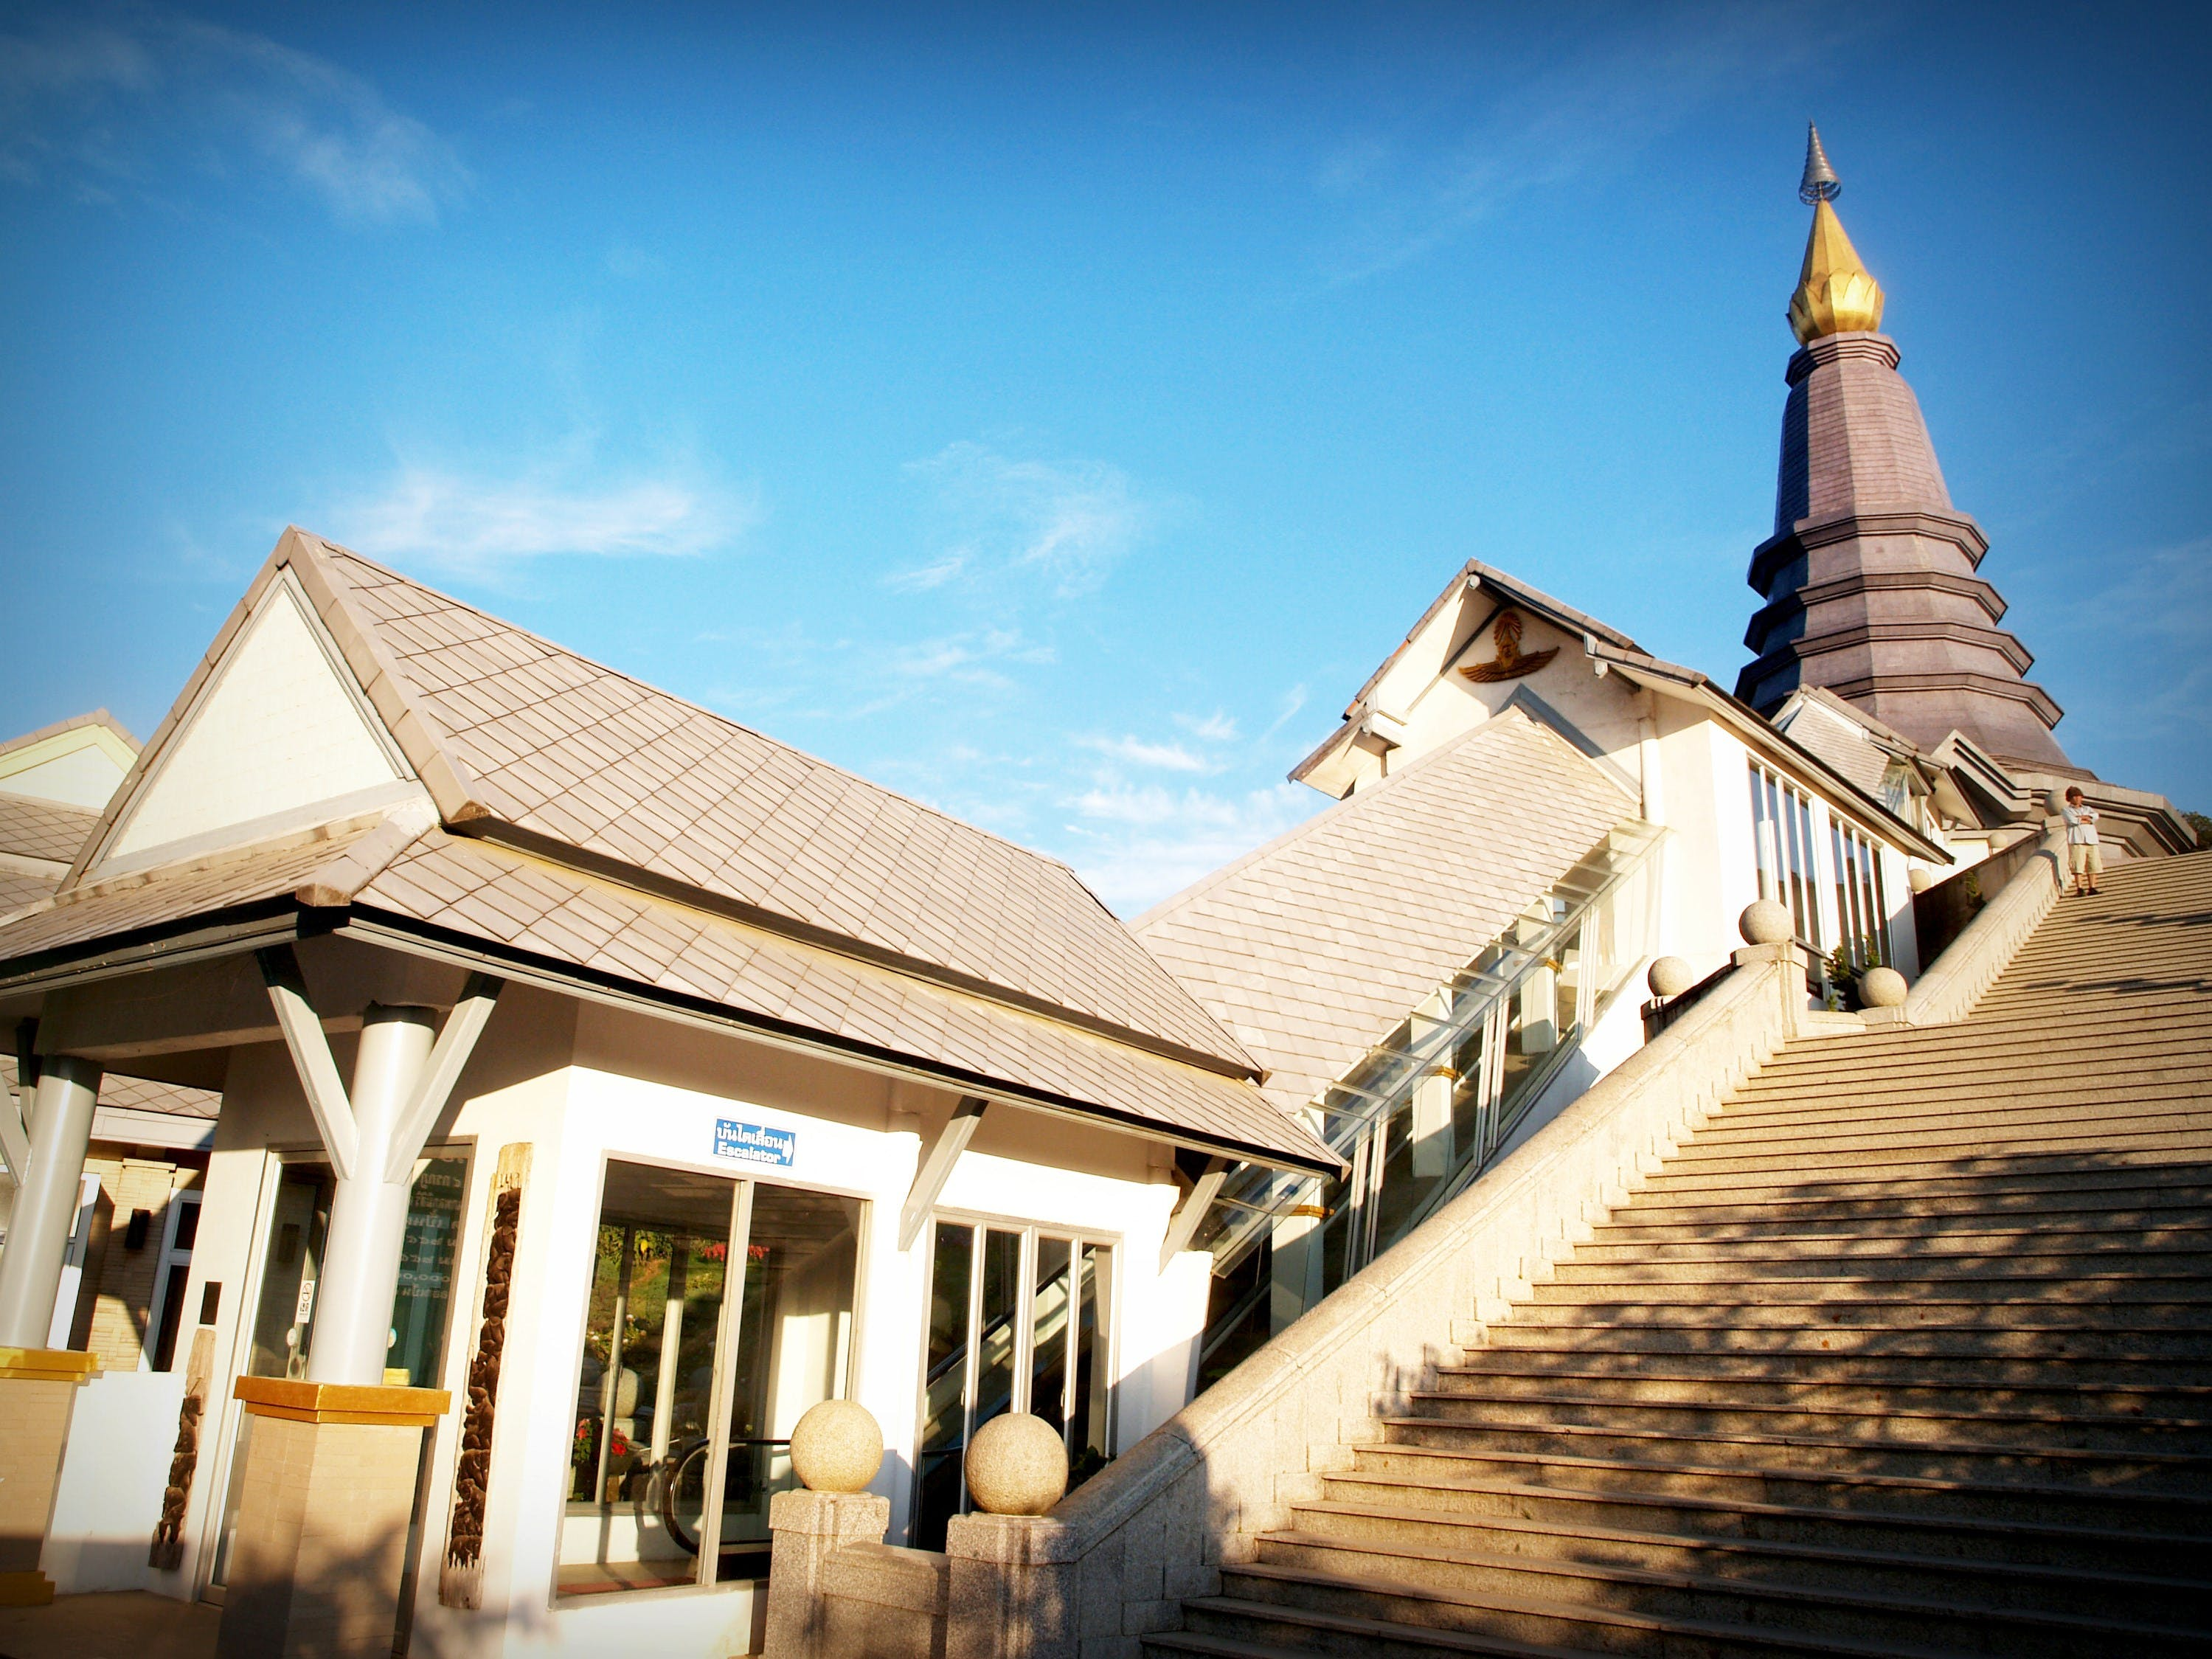 Beige and White Temple Beside Stairs